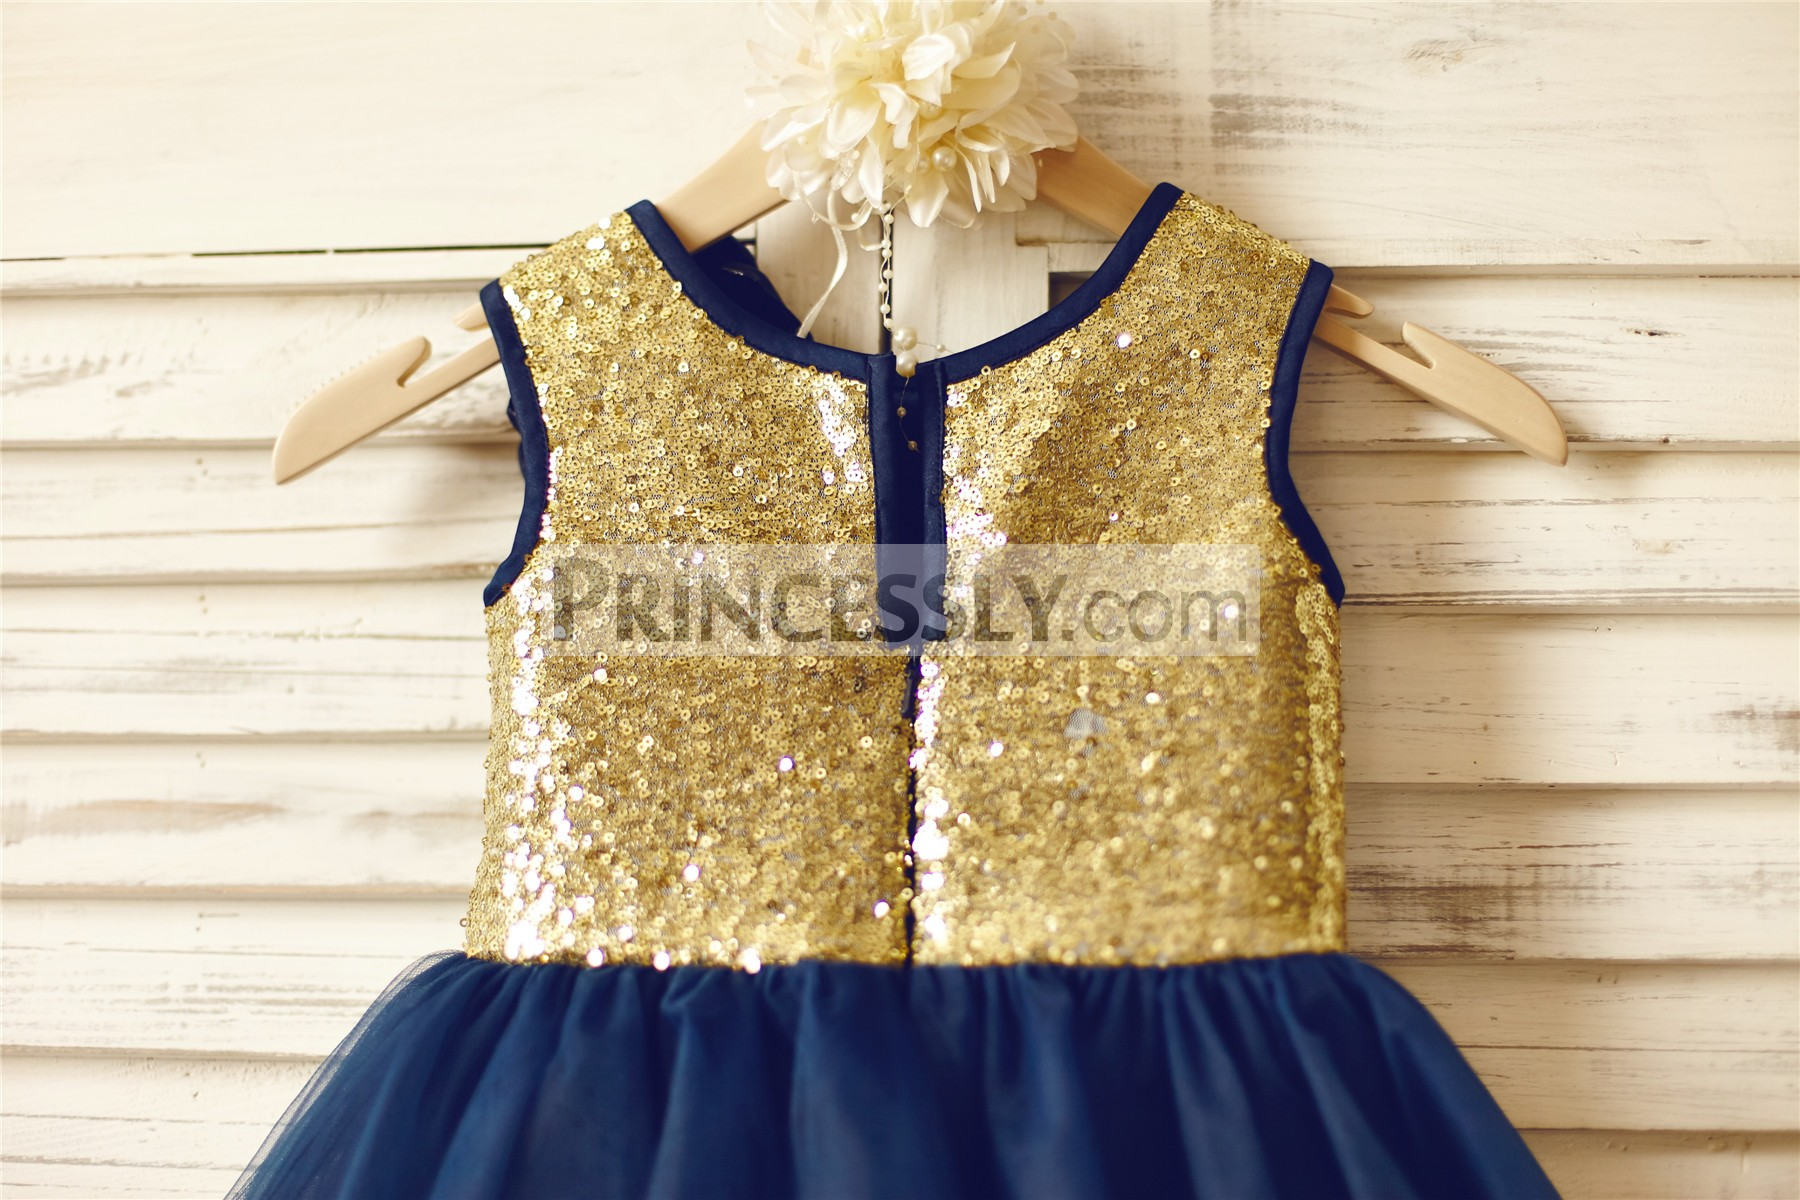 Gold sequined bodice